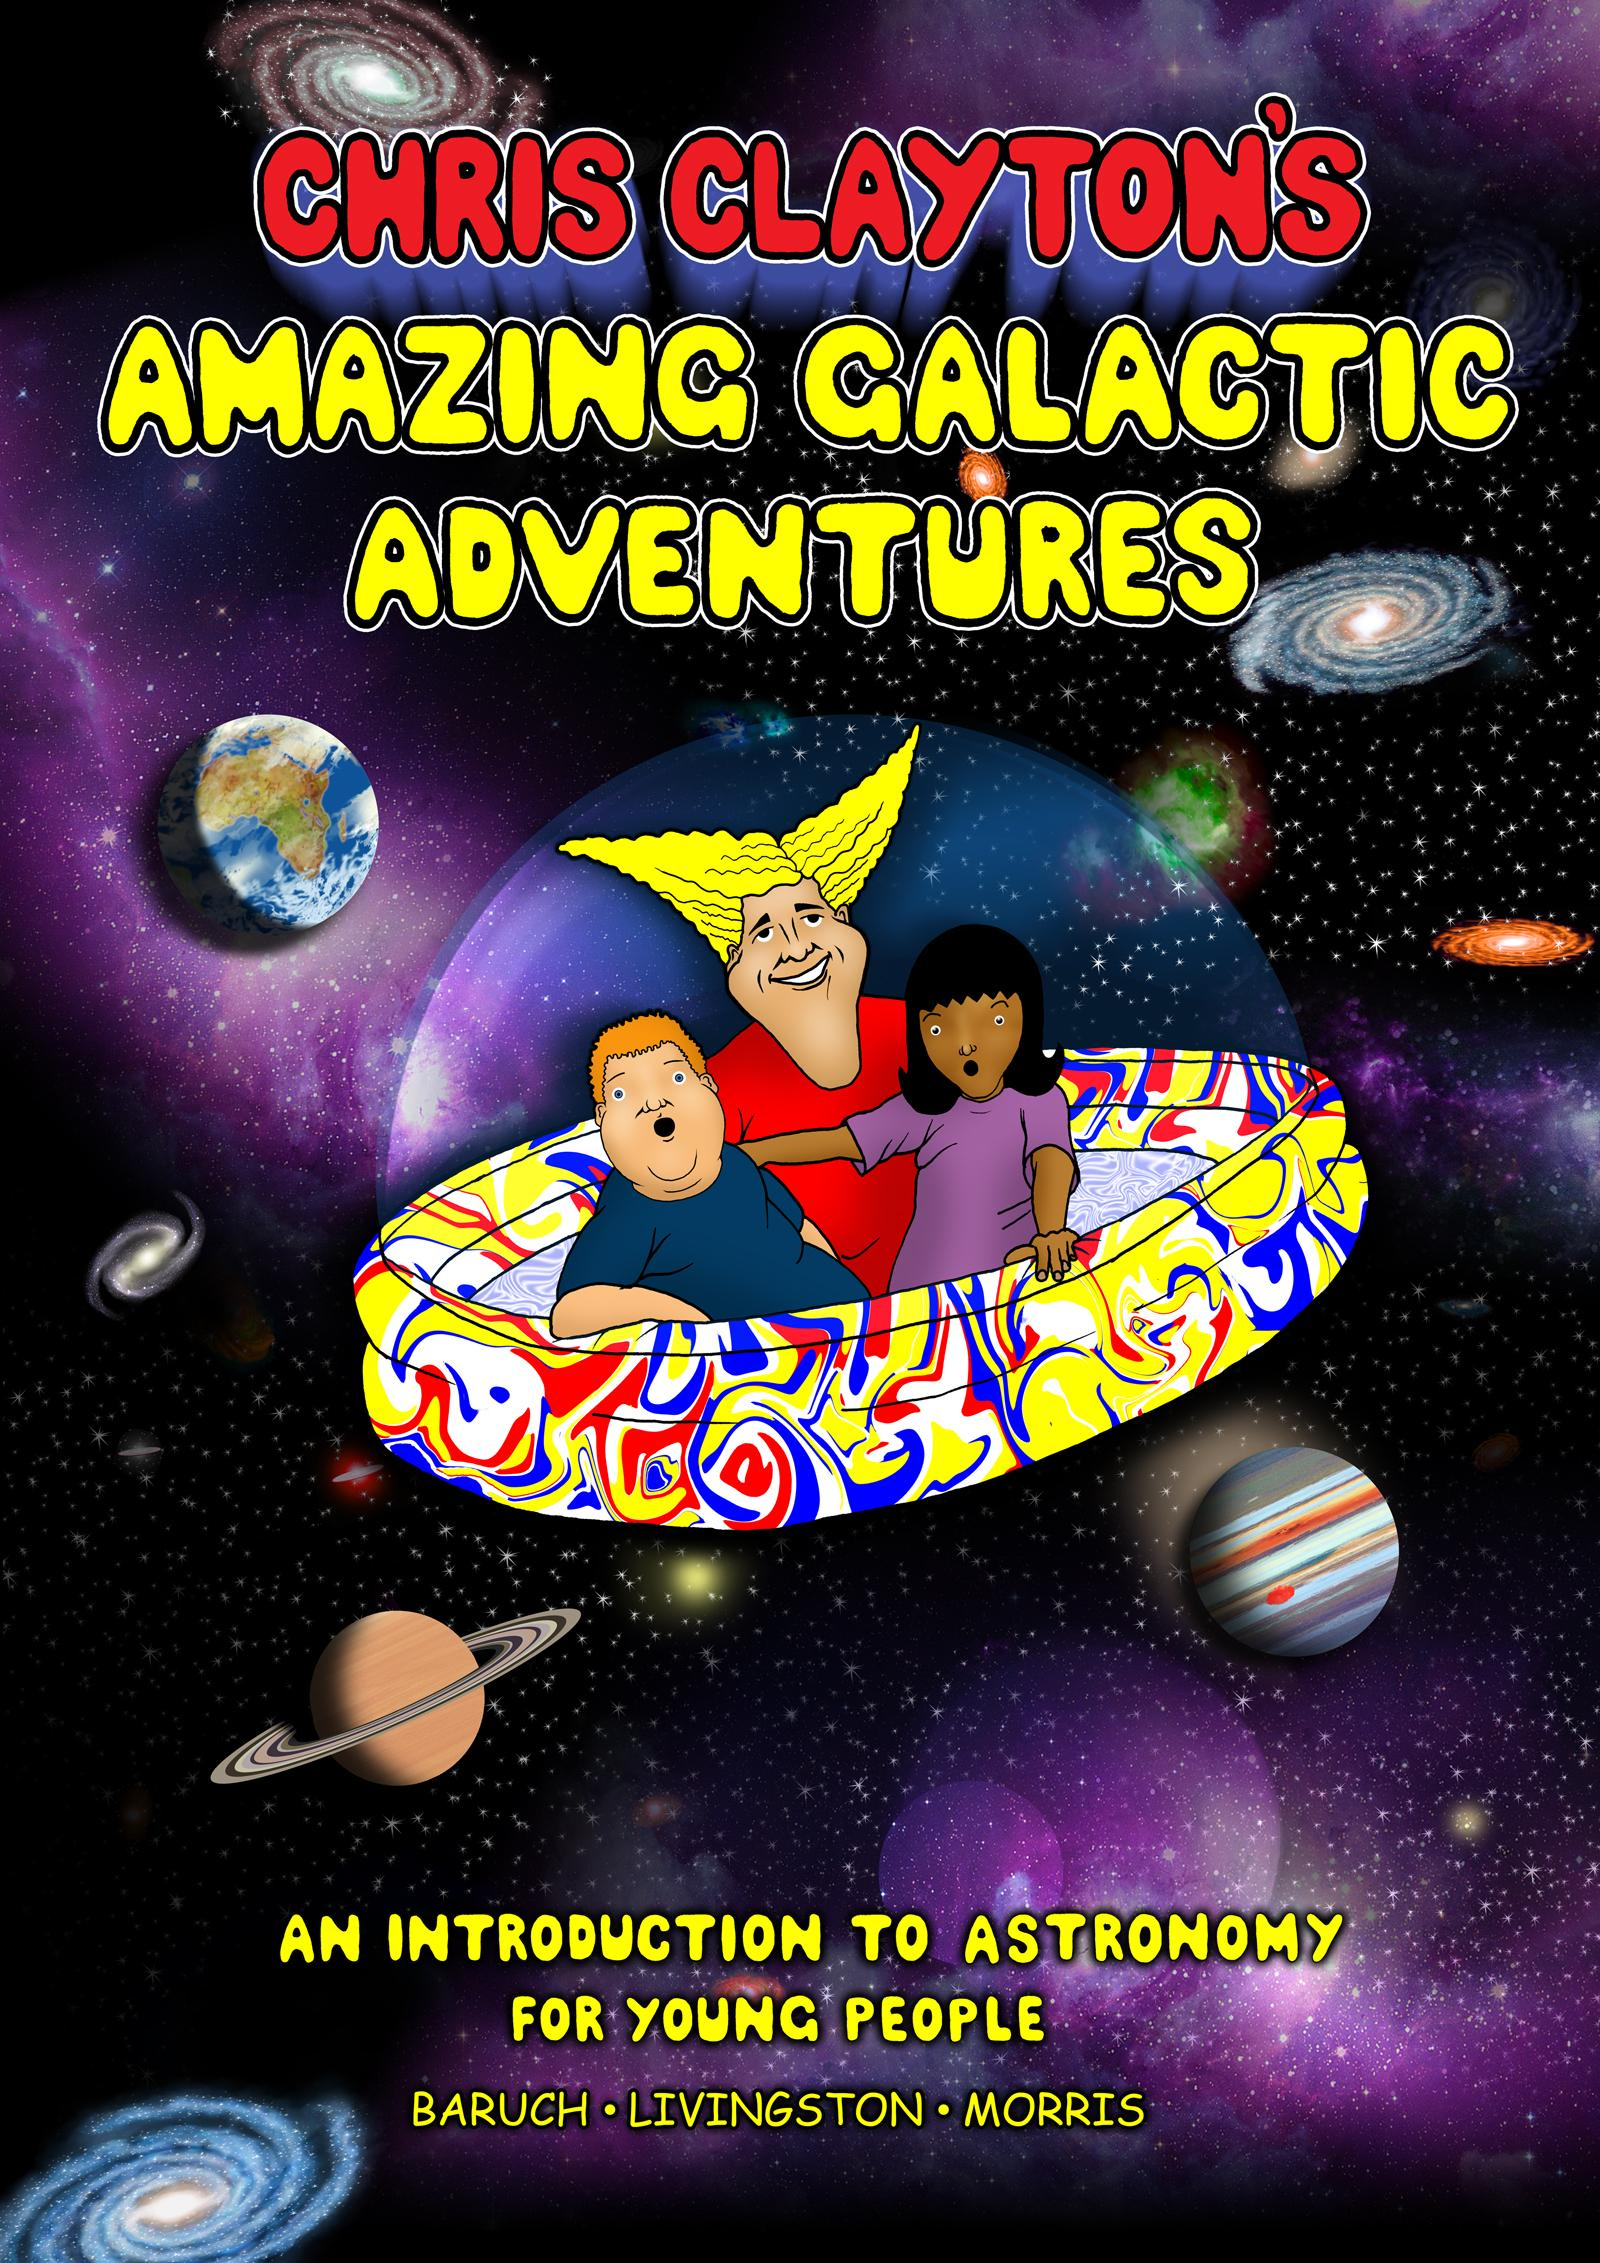 Chris Claytons Amazing Galactic Adventures